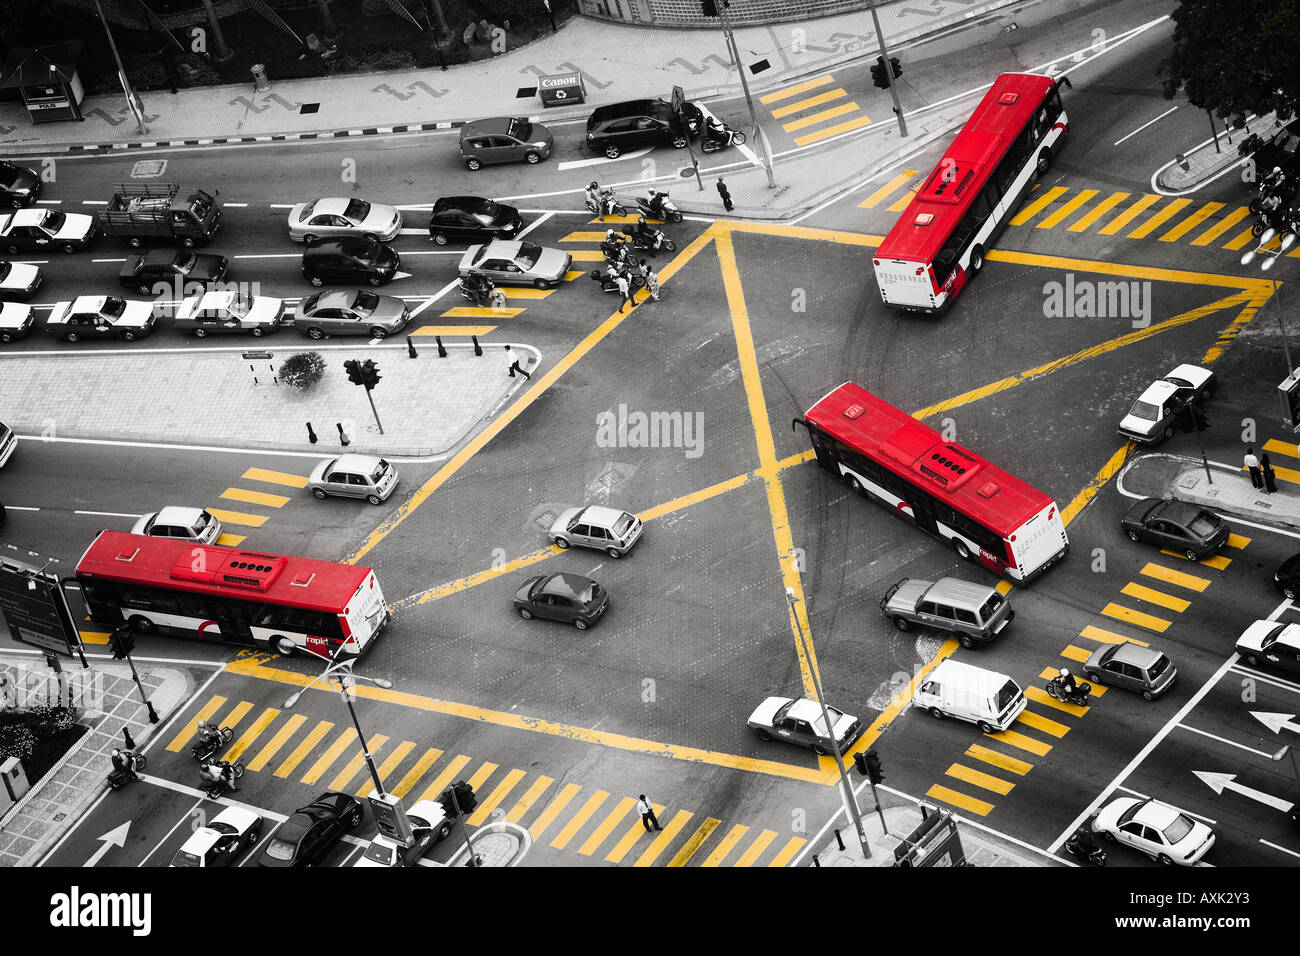 busses road intersection cars traffic go stop streets black white yellow red commute transportation road travel - Stock Image